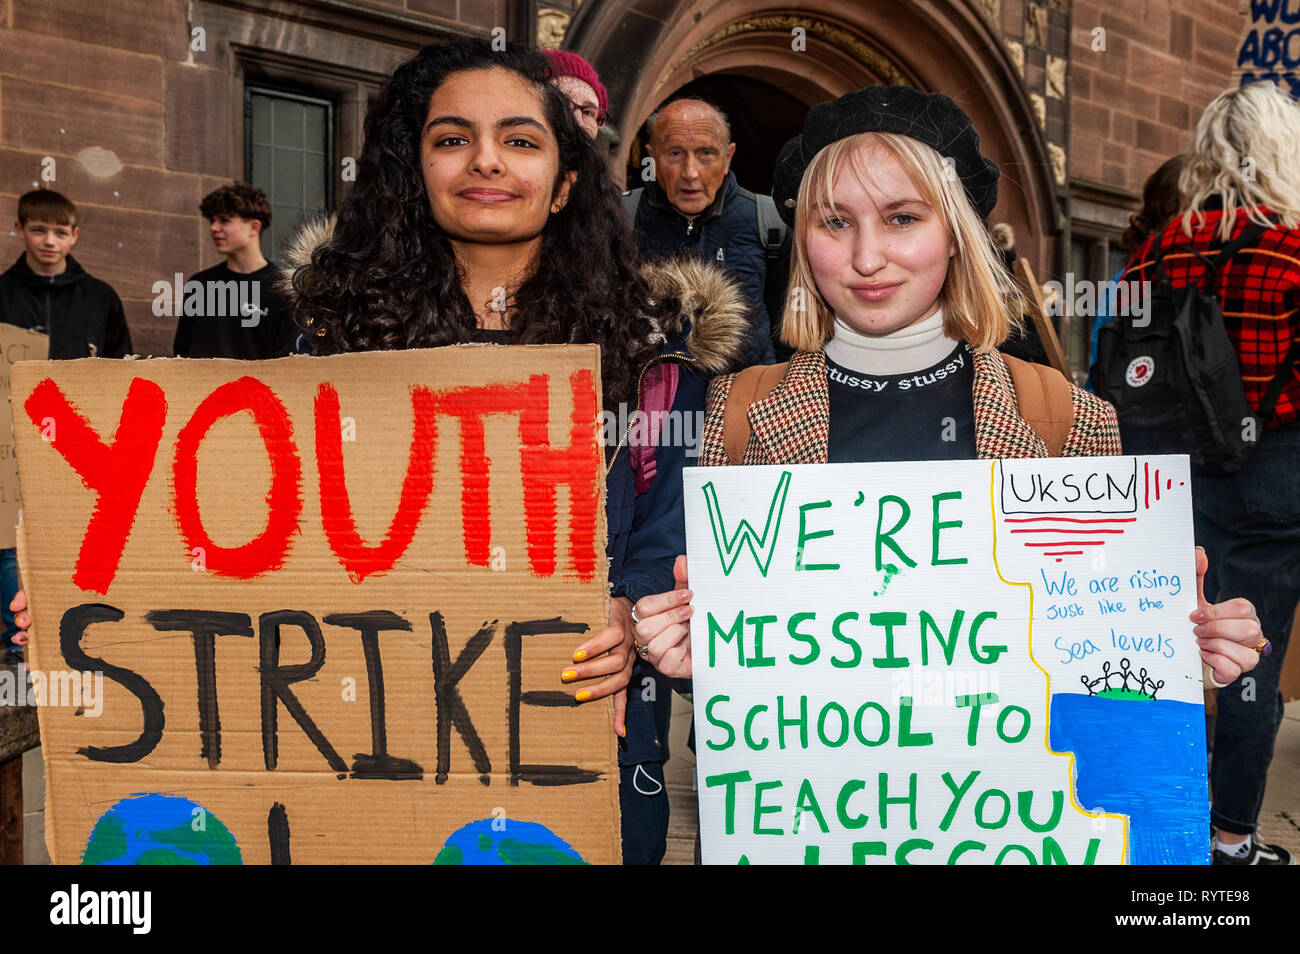 Coventry, West Midlands, UK. 15th March, 2019. A large crowd of protesters gathered outside Coventry Council House this morning with banners and placards in the latest climate change protest. Young people have taken to the streets of the UK in a global protest to try and bring about climate change.  At the protest were Shreya Virdee and Millie Hilditch-Gray, both from Coventry. Credit: Andy Gibson/Alamy Live News. - Stock Image